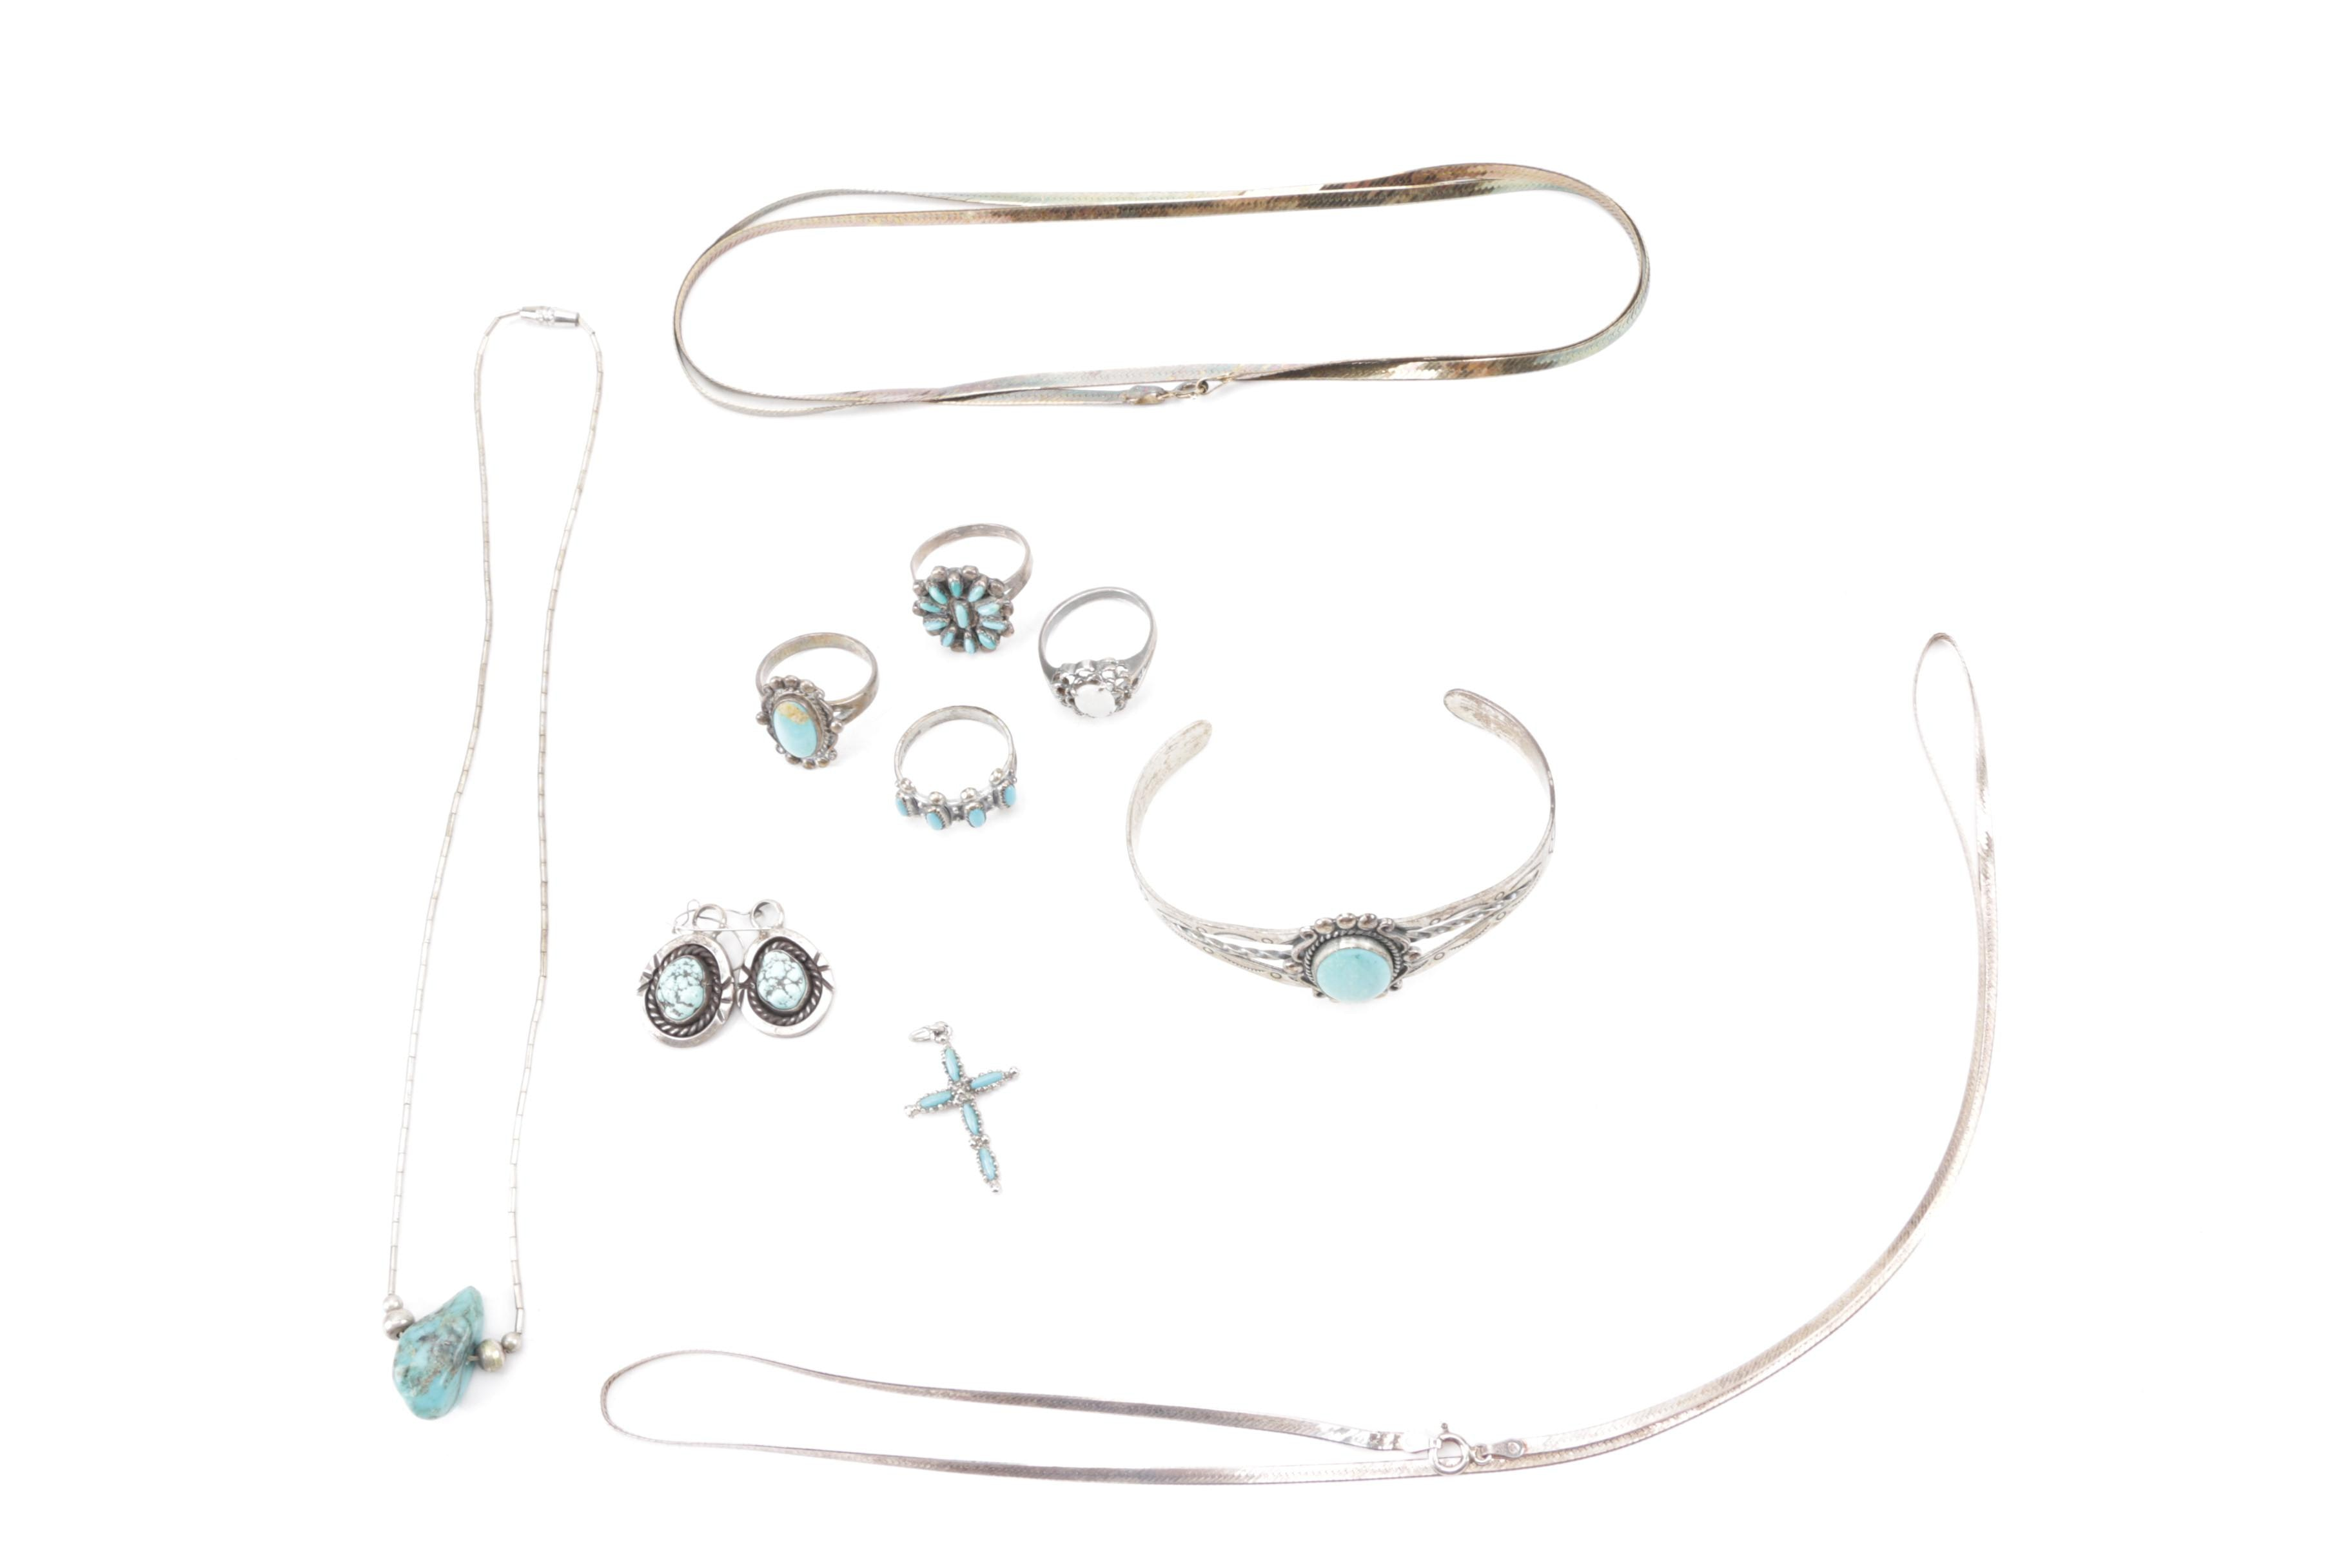 Grouping of Sterling Silver Jewelry Including Bell Trading Post